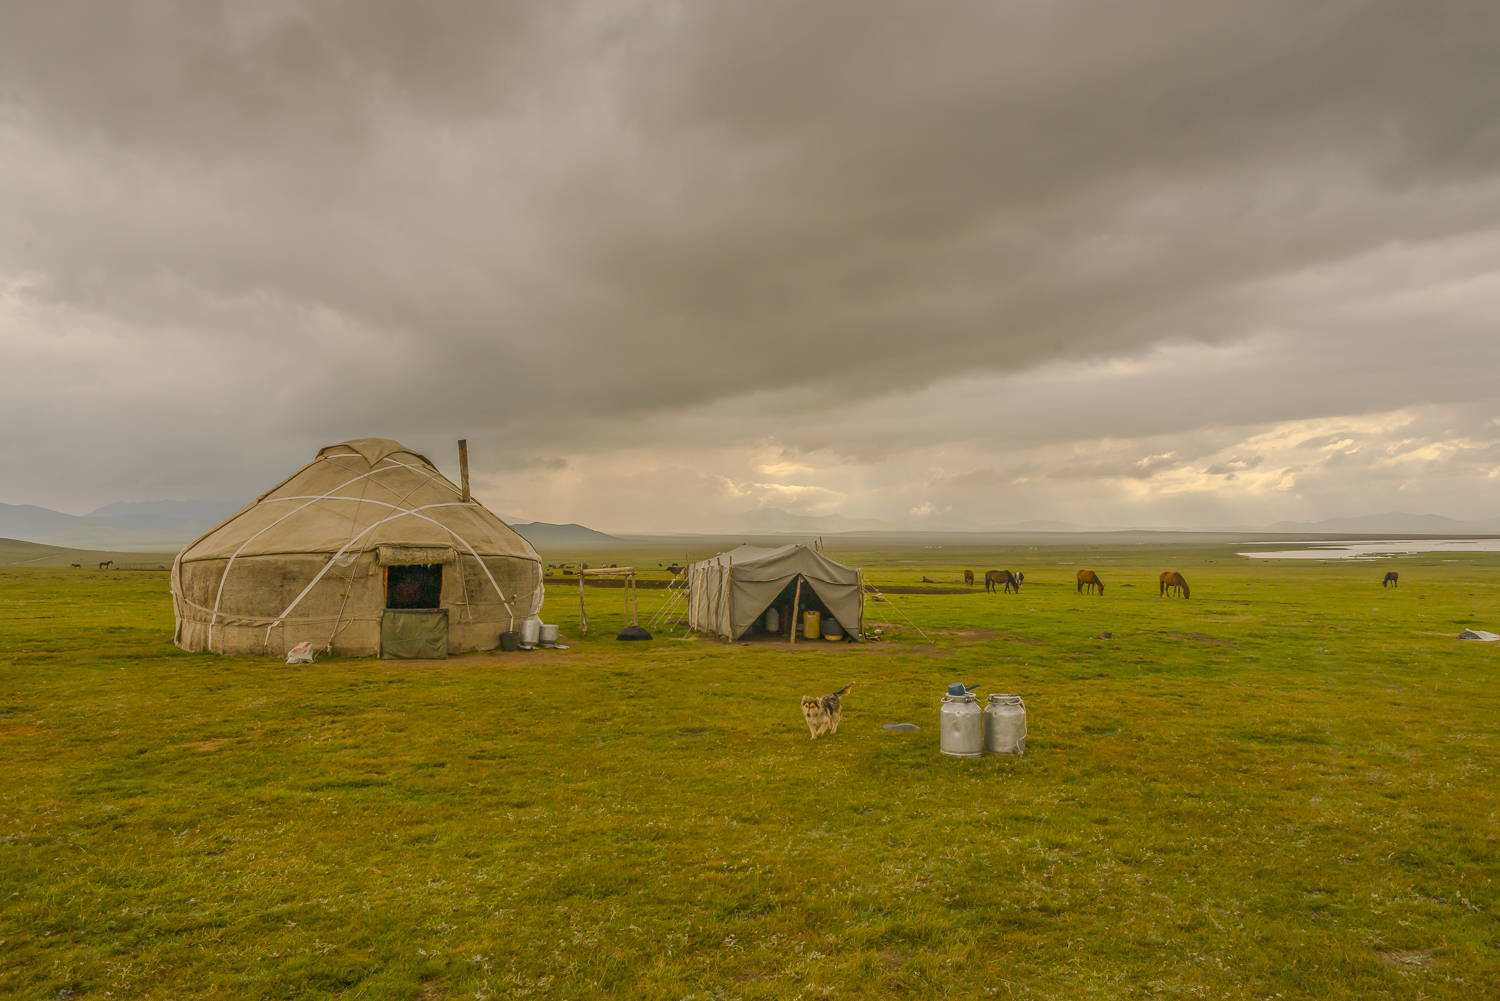 jo-kearney-photography-video-kyrgyzstan-nomads-milking-mares-yurt-song-kul-lake.jpg